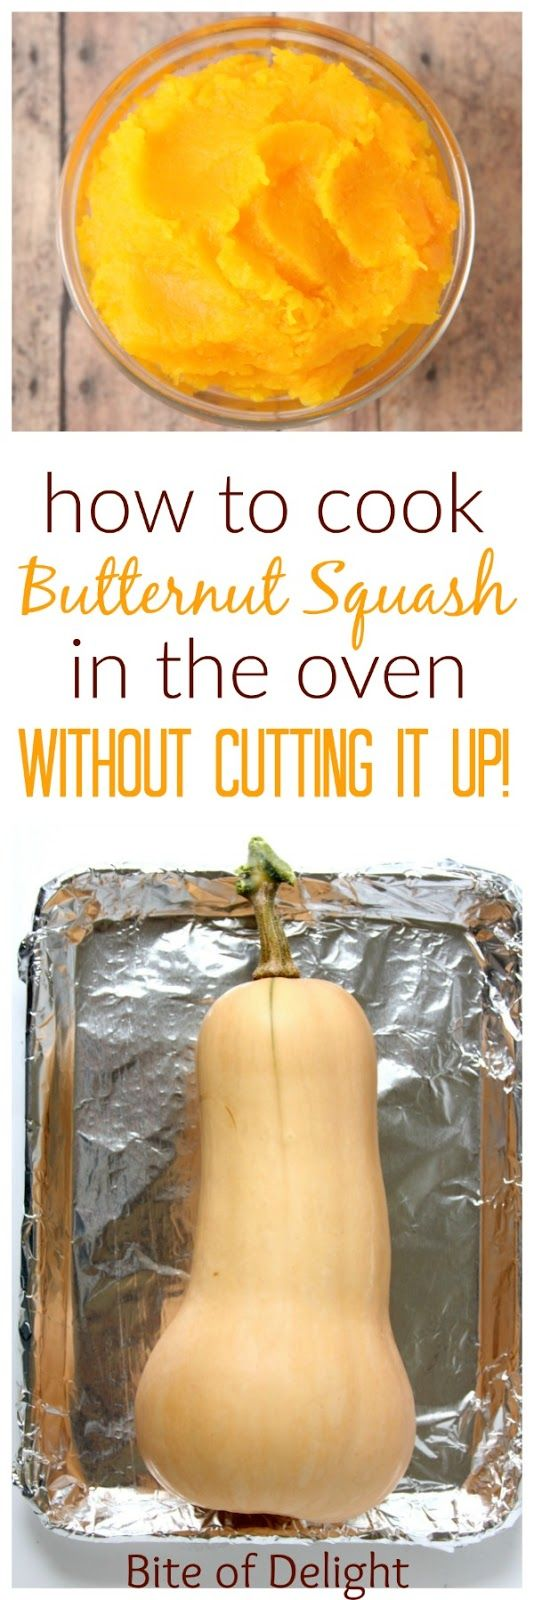 You can cook butternut squash whole in the oven! So easy, I can't believe I went so long without knowing this!